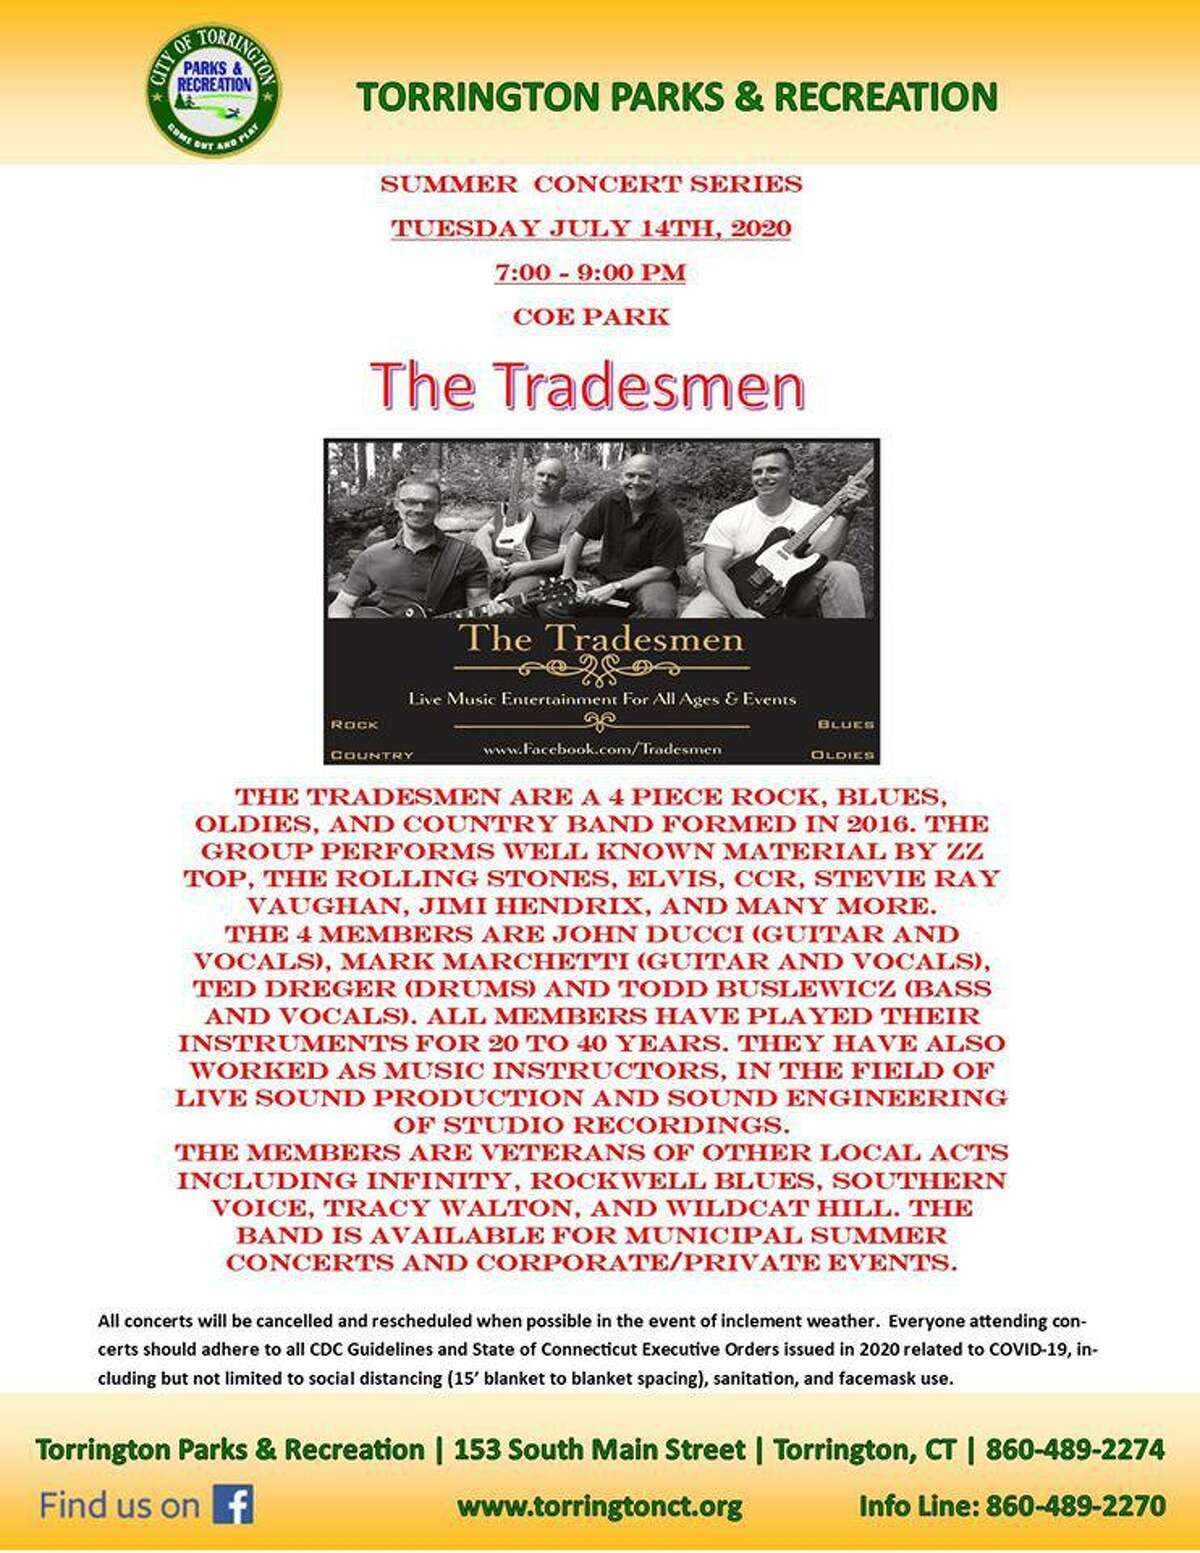 The Tradesmen are scheduled to perform Tuesday night at Coe Memorial Park Civic Center. The concert is part of the Parks and Recreation Department's annual summer concerts series.